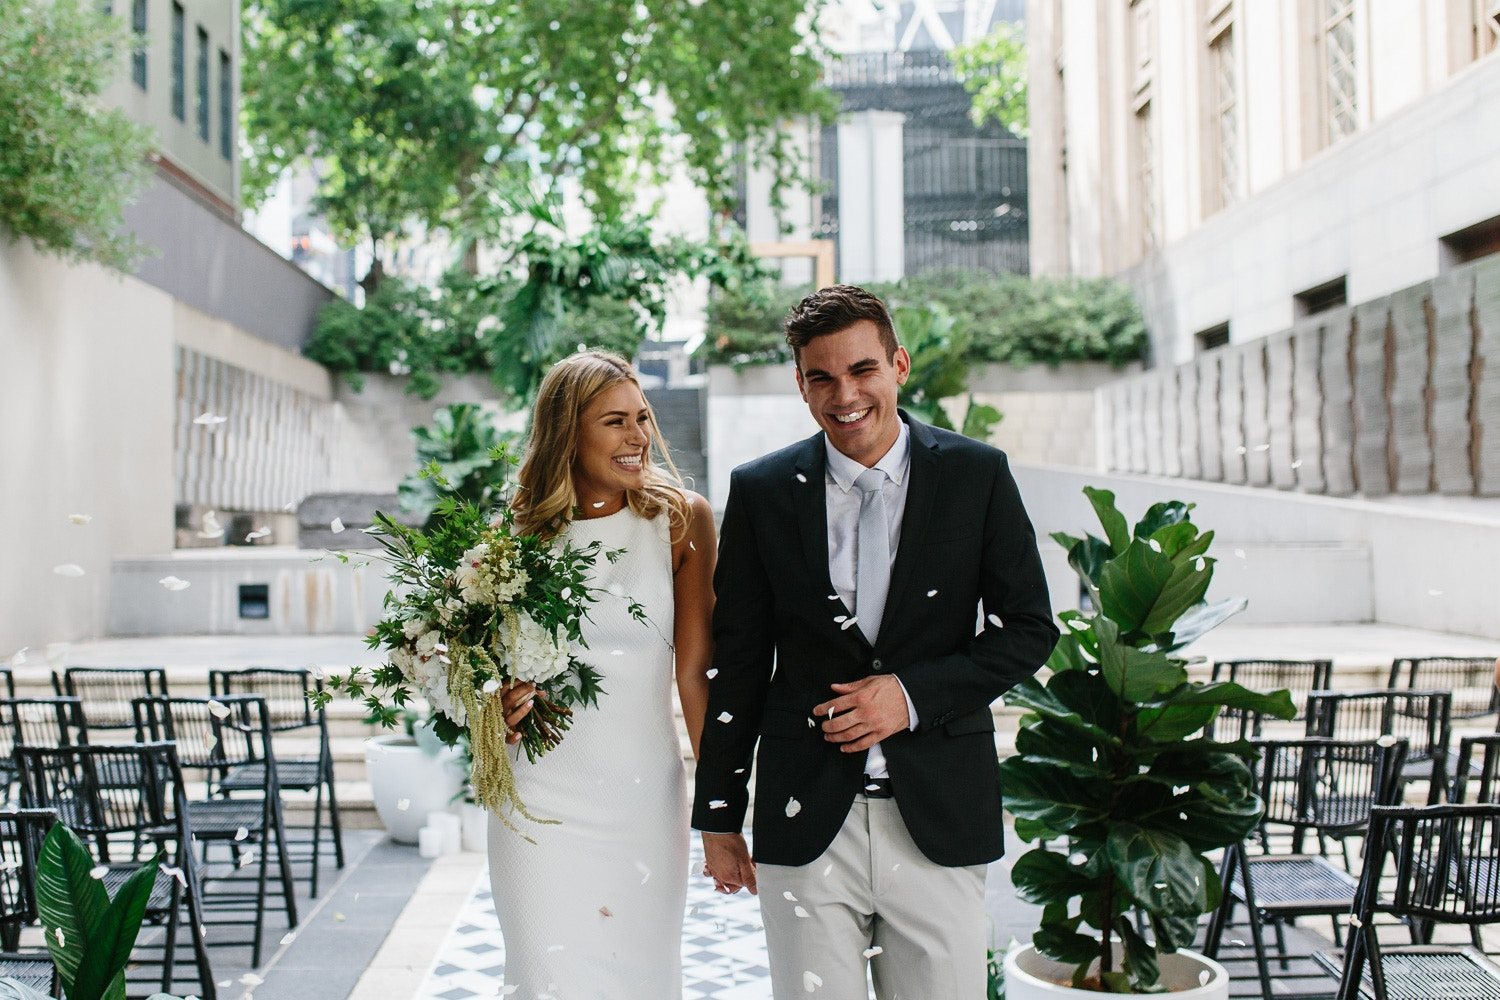 TOP 5 TIPS FOR YOUR WEDDING DAY WITH BYRON BAY CELEBRANT